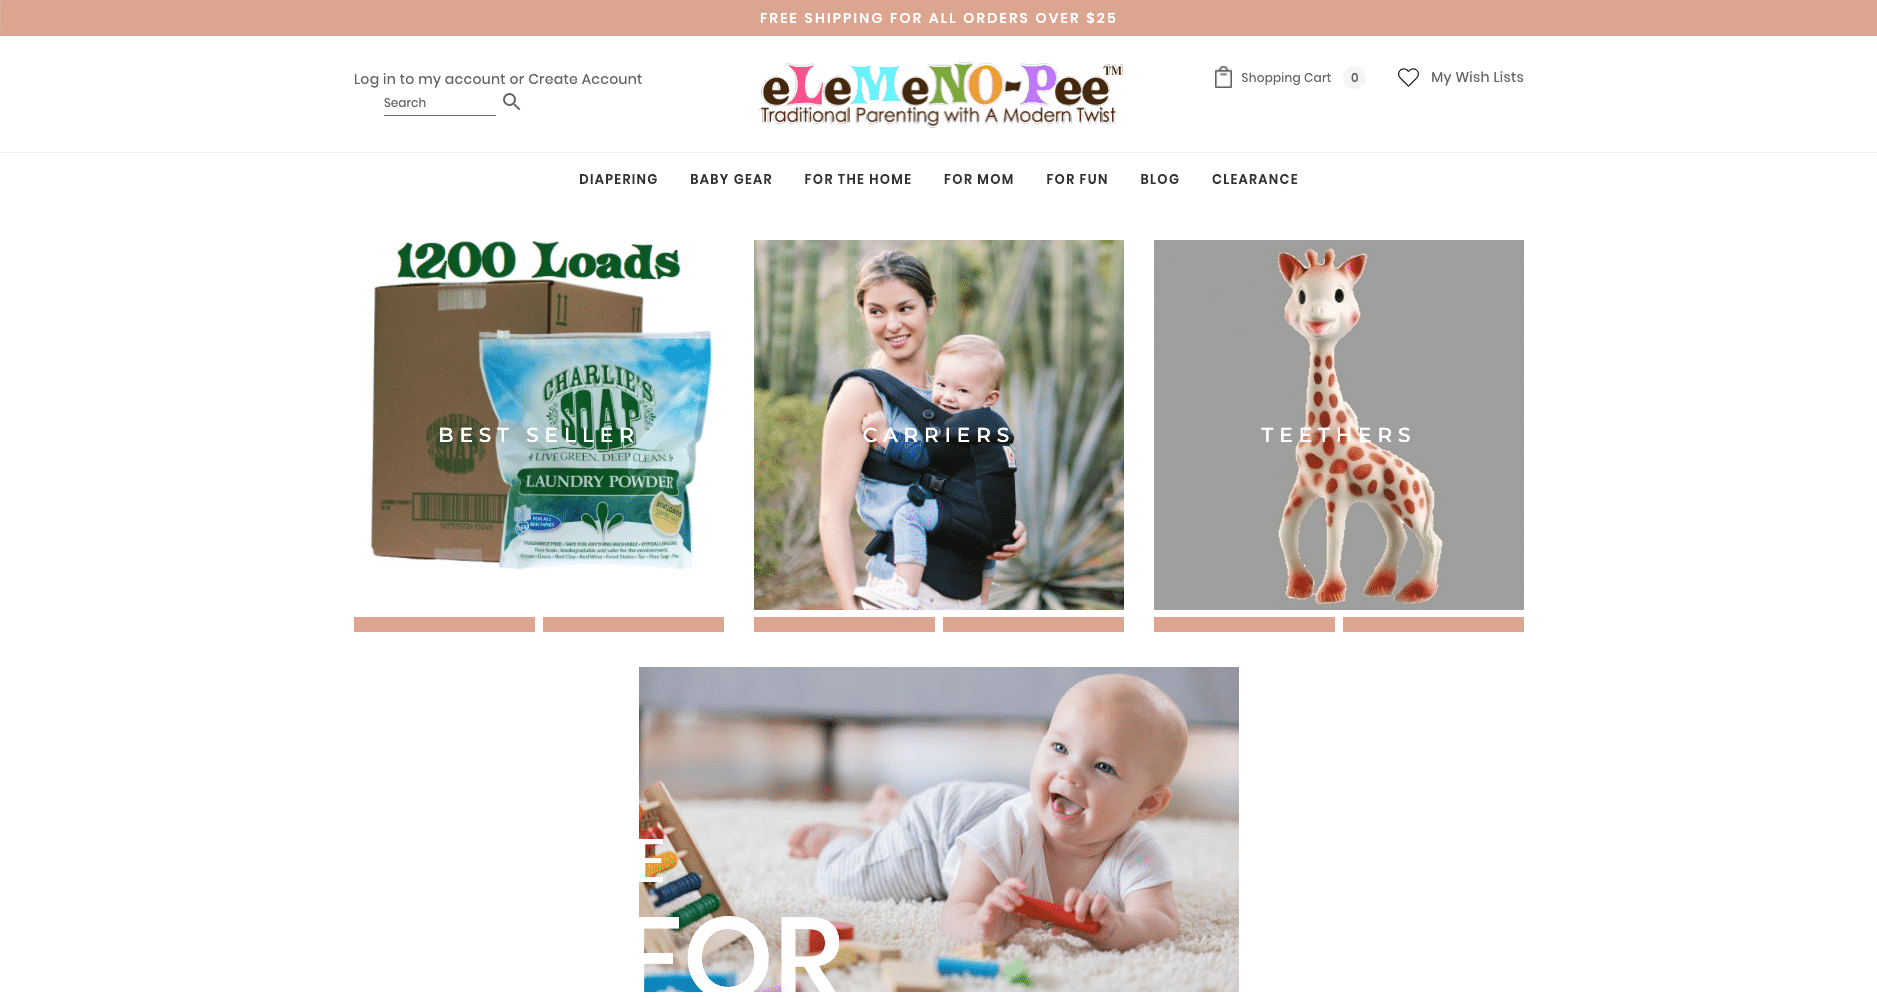 eLeMeNO-Pee, modern parenting products